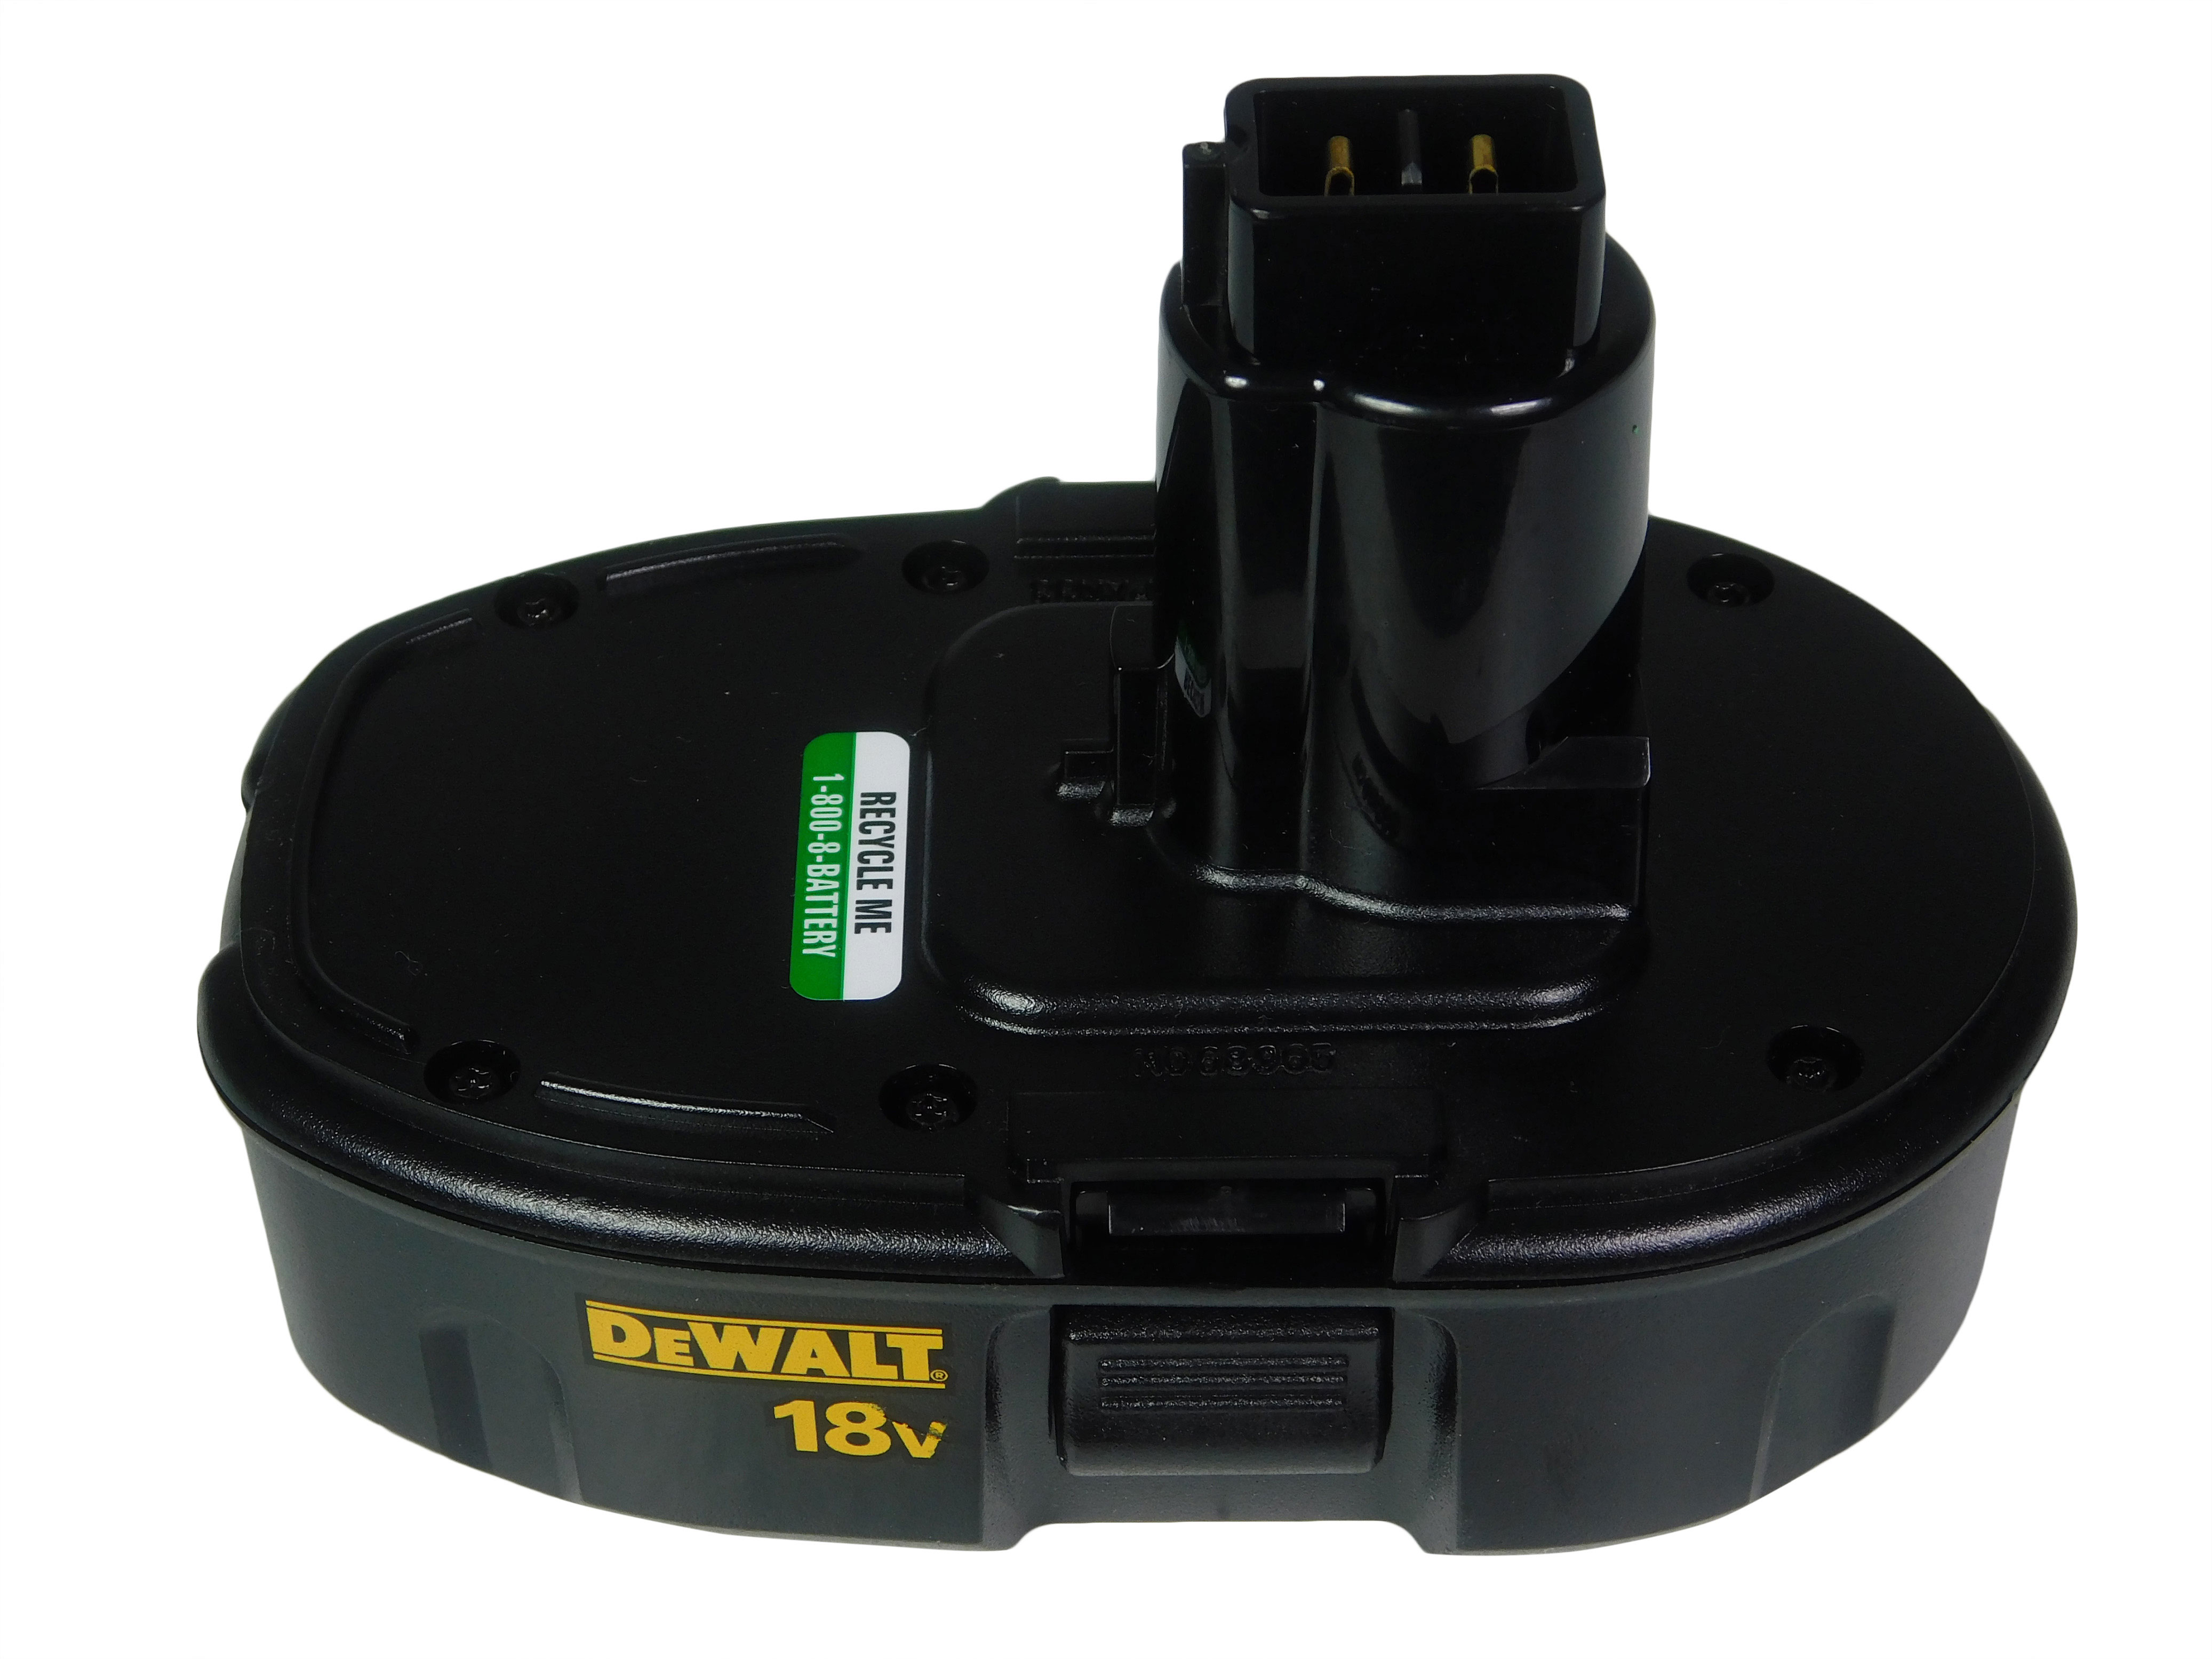 Dewalt-DC9098-18V-Ni-Cad-Battery-Single-Pack-image-7